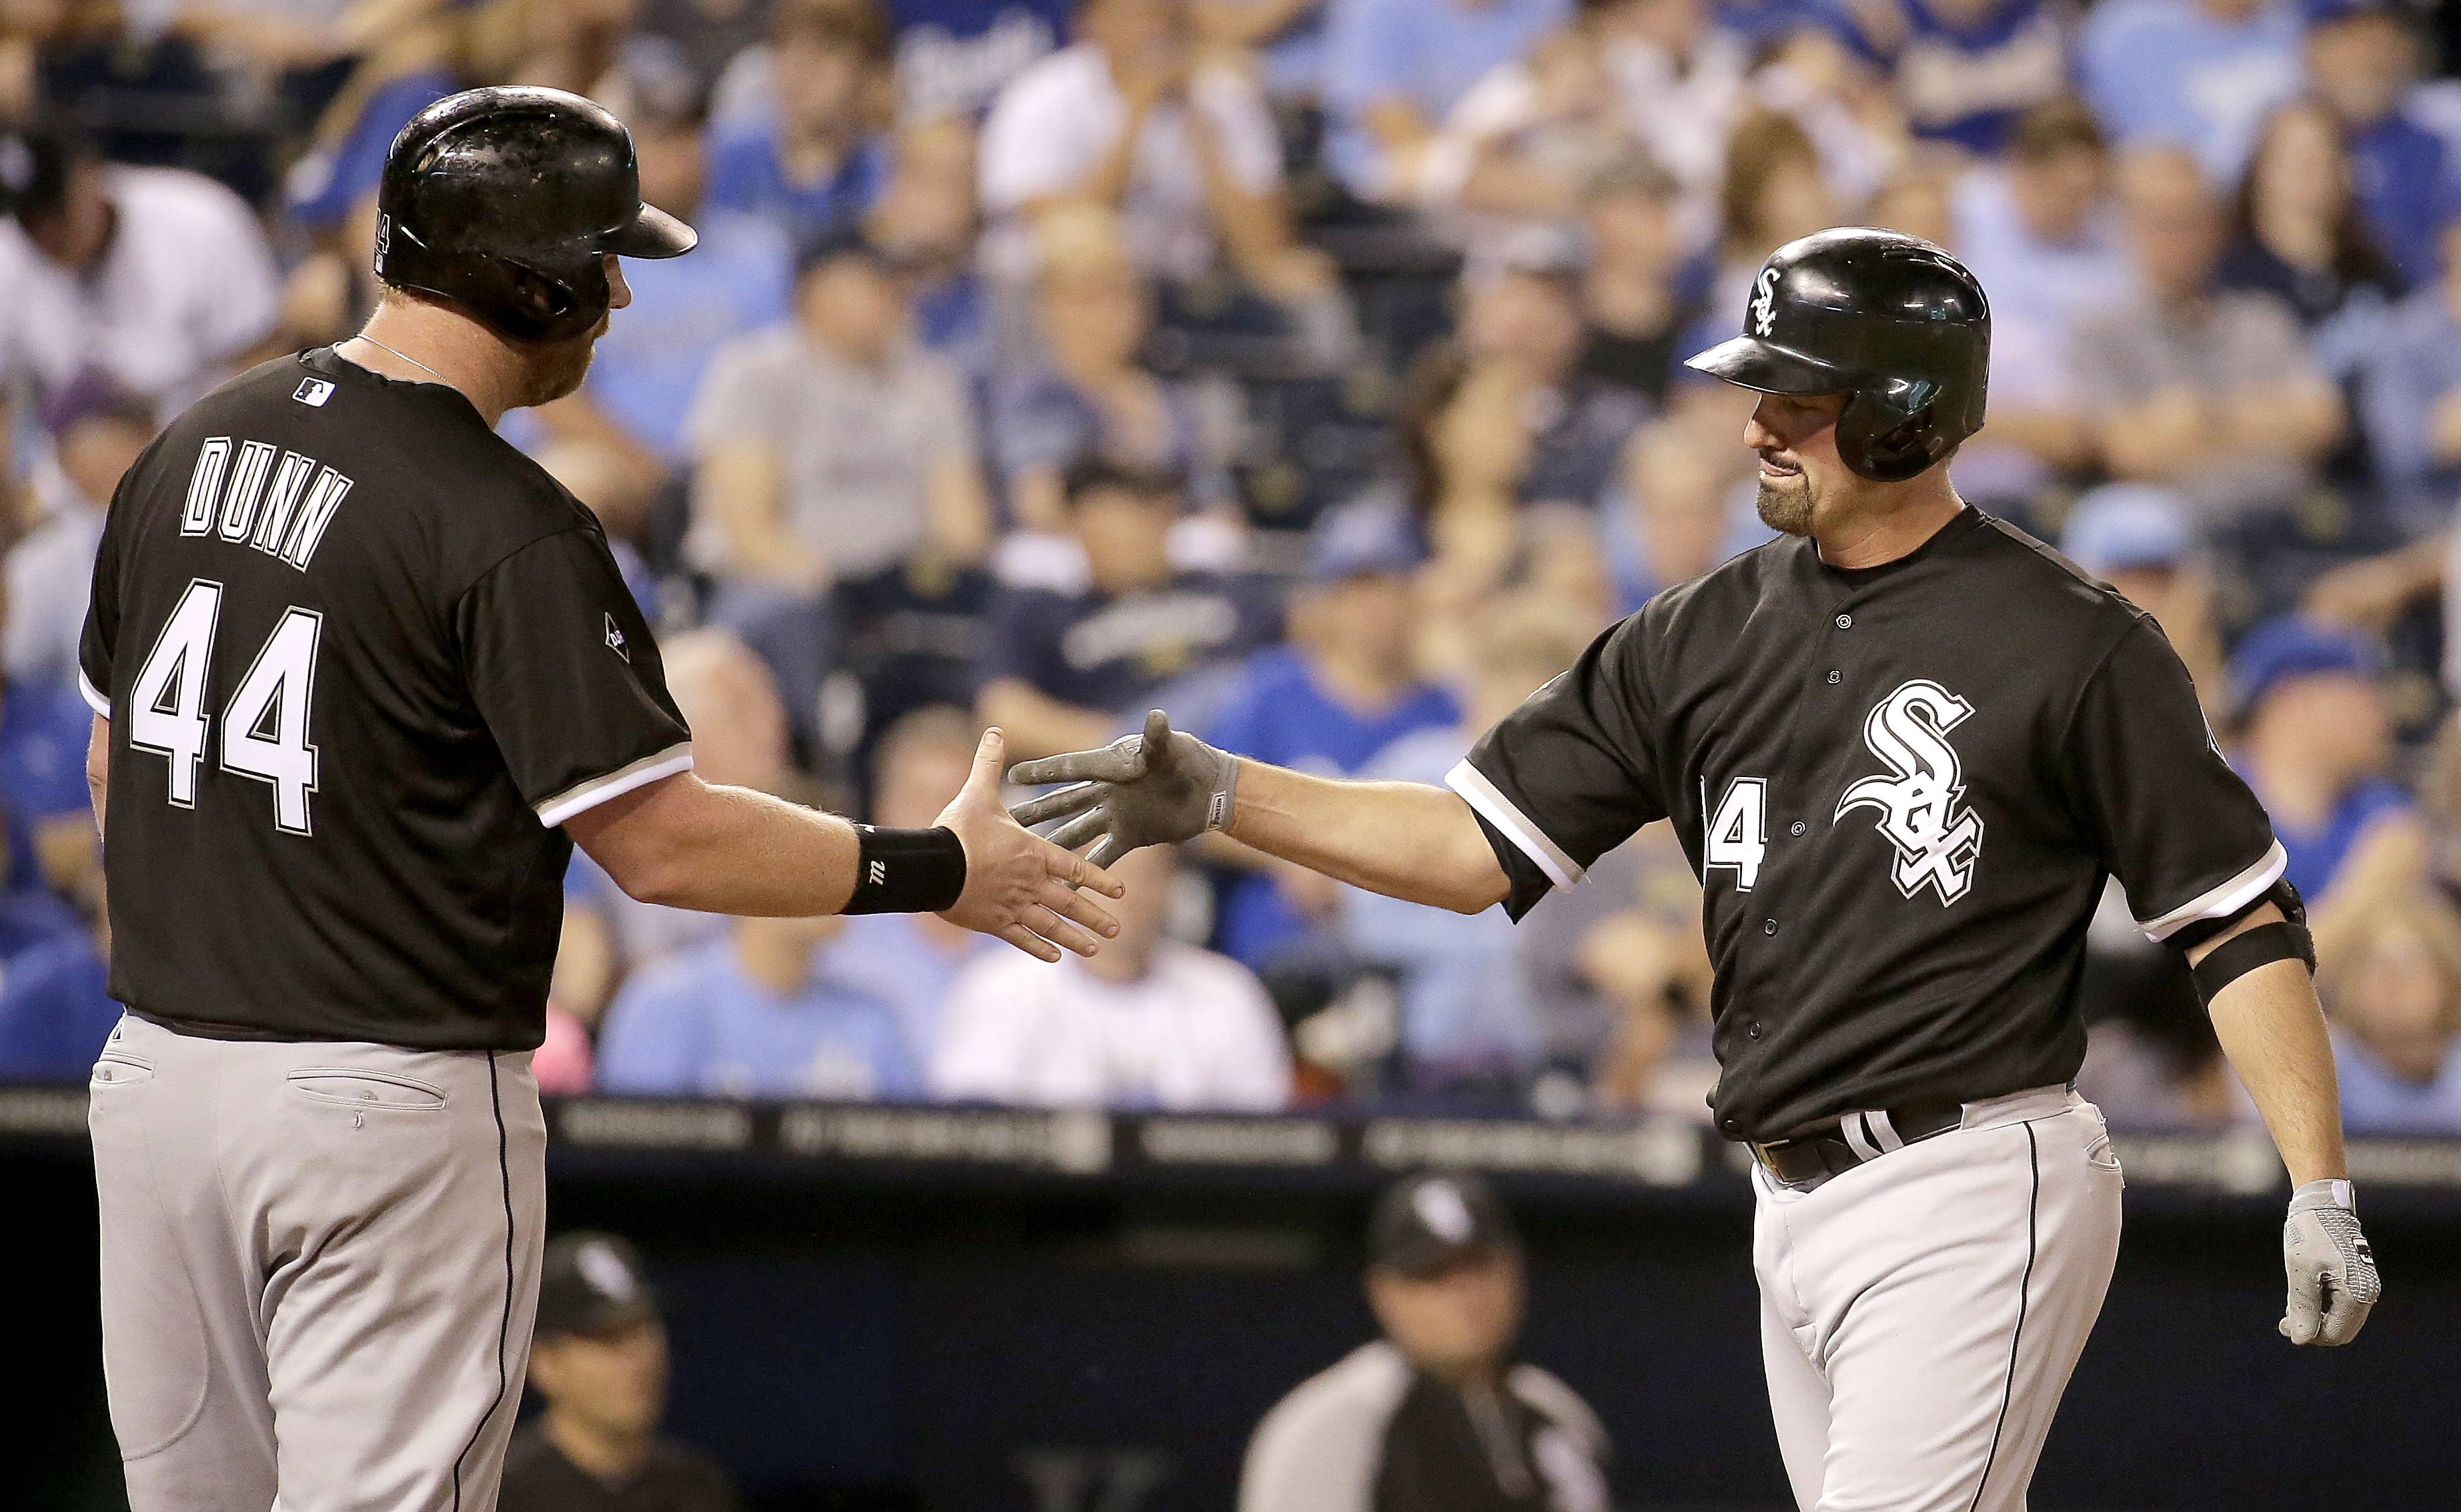 Chicago White Sox's Paul Konerko, right, celebrates with Adam Dunn (44) after hitting a two-run home run Monday night during the fifth inning of a baseball game against the Kansas City Royals in Kansas City, Mo.